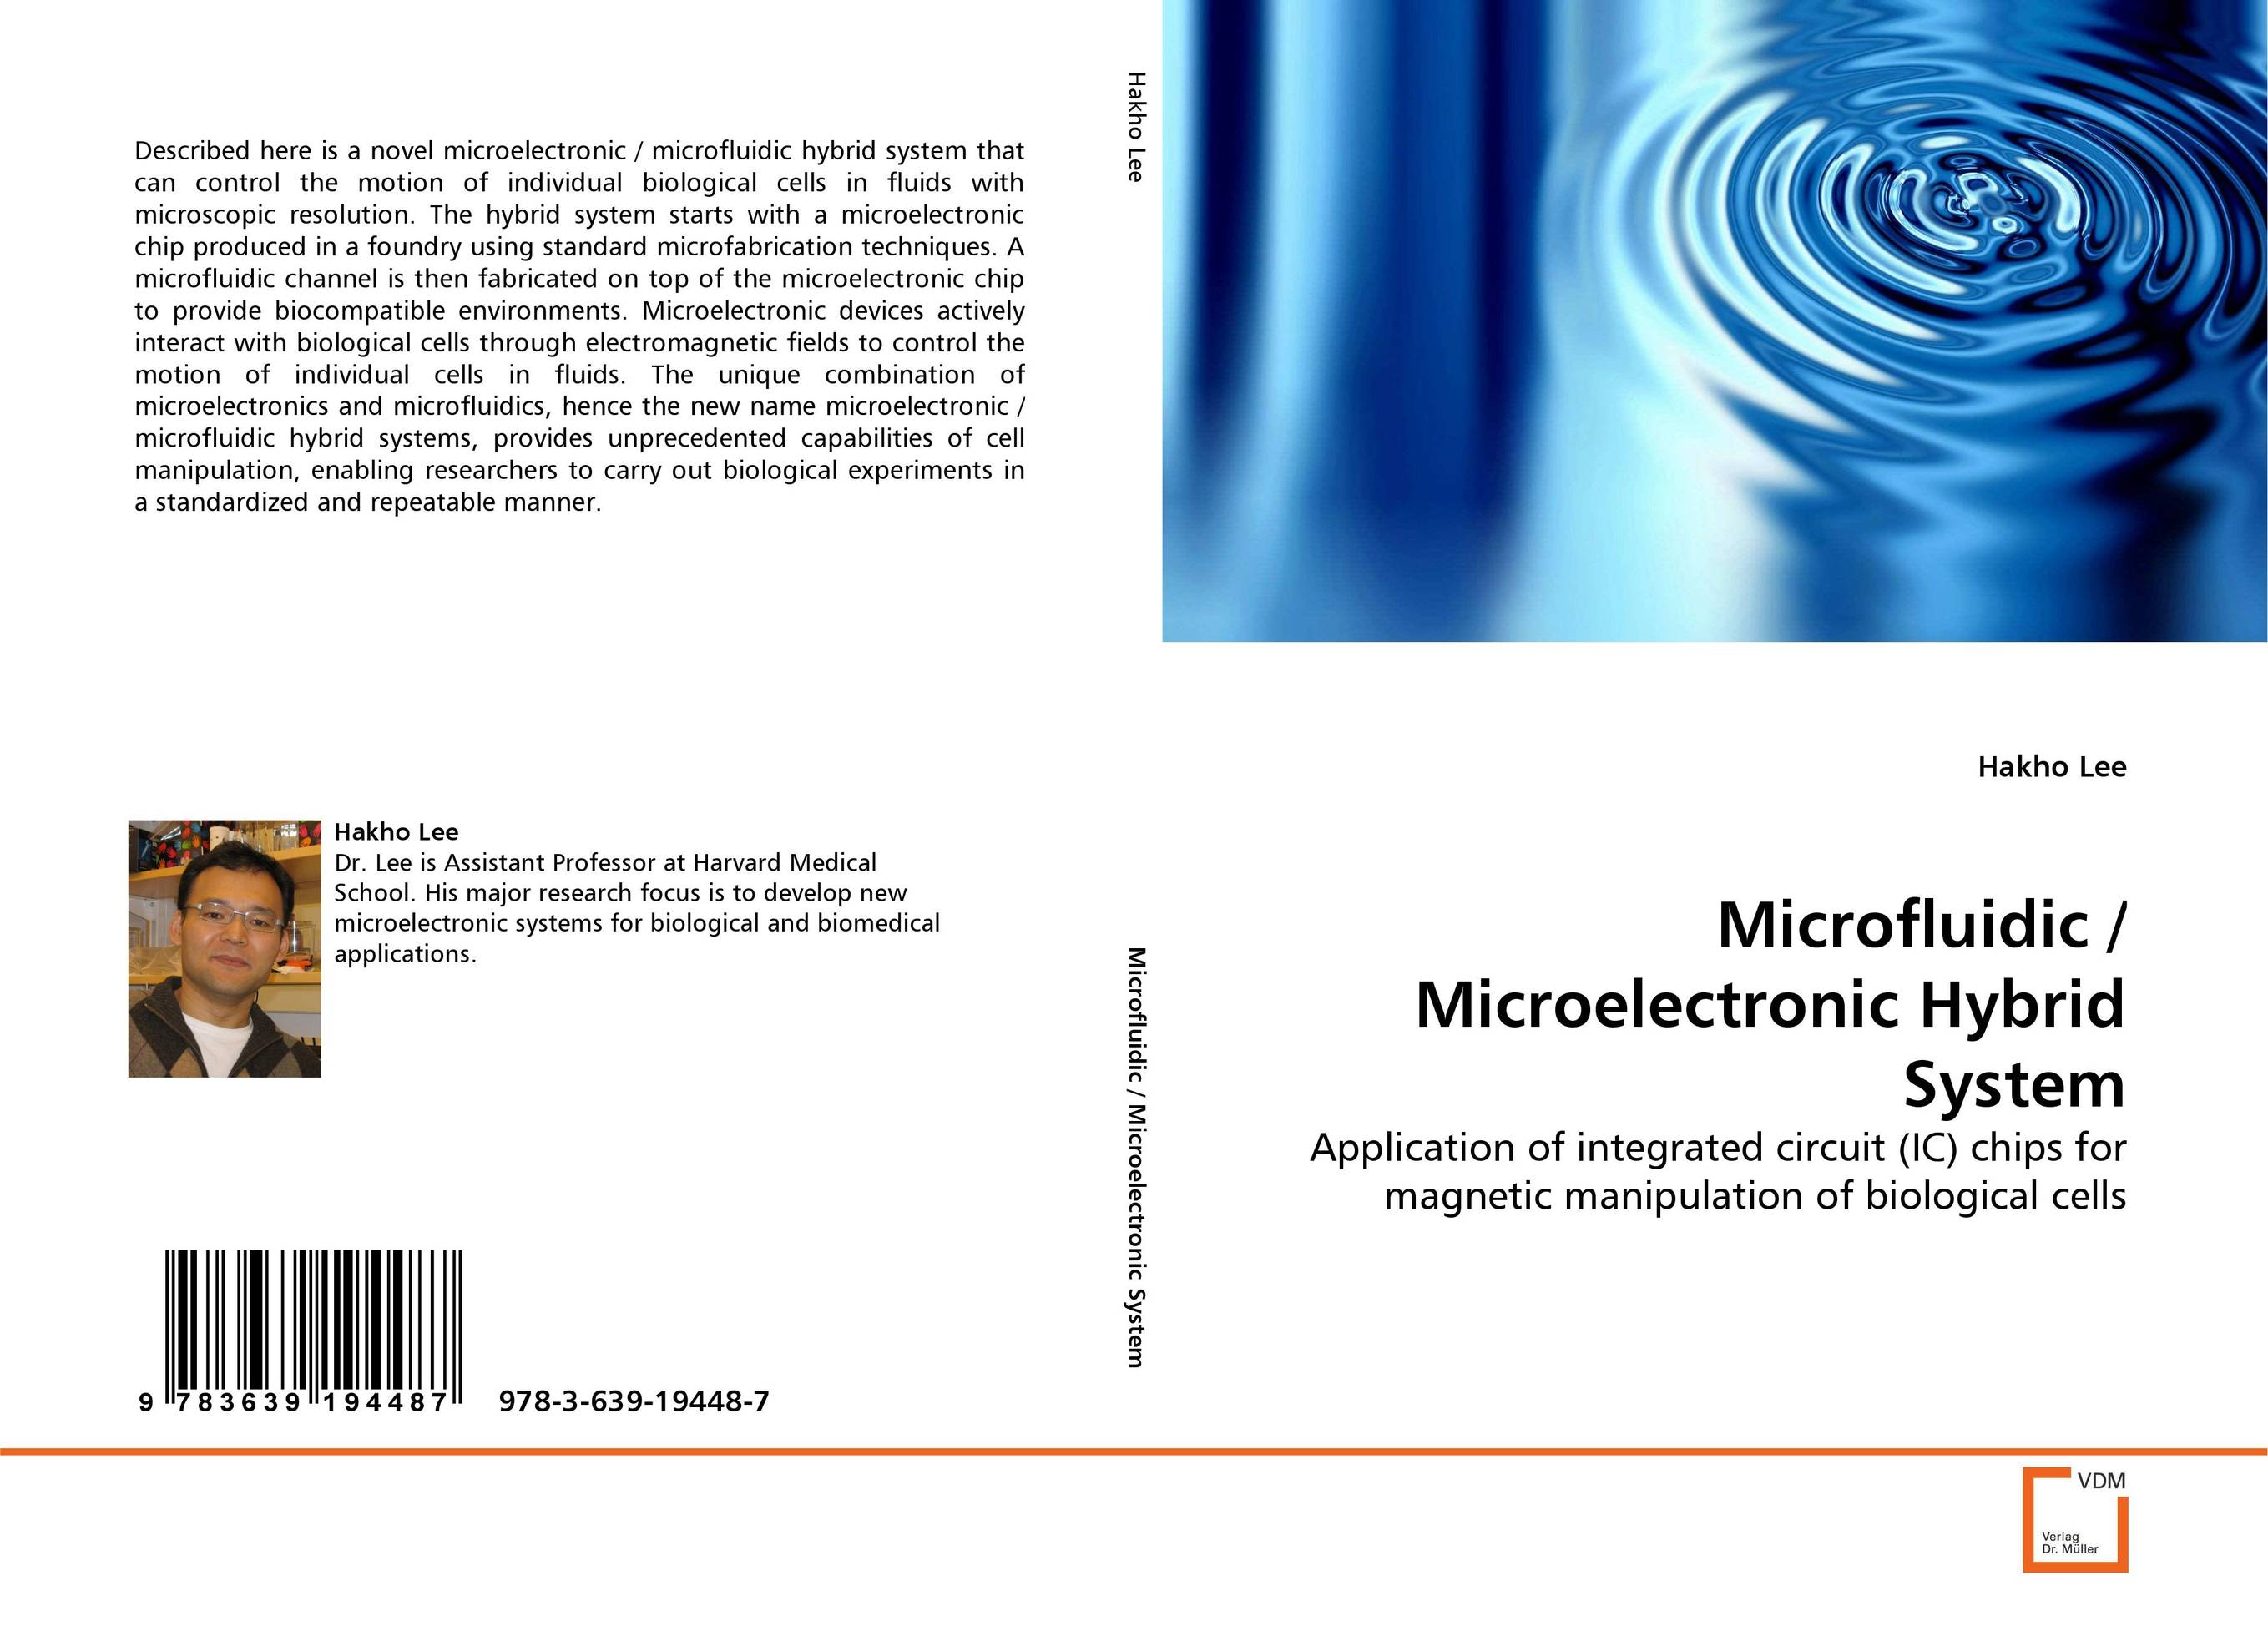 Microfluidic / Microelectronic Hybrid System hybrid systems control